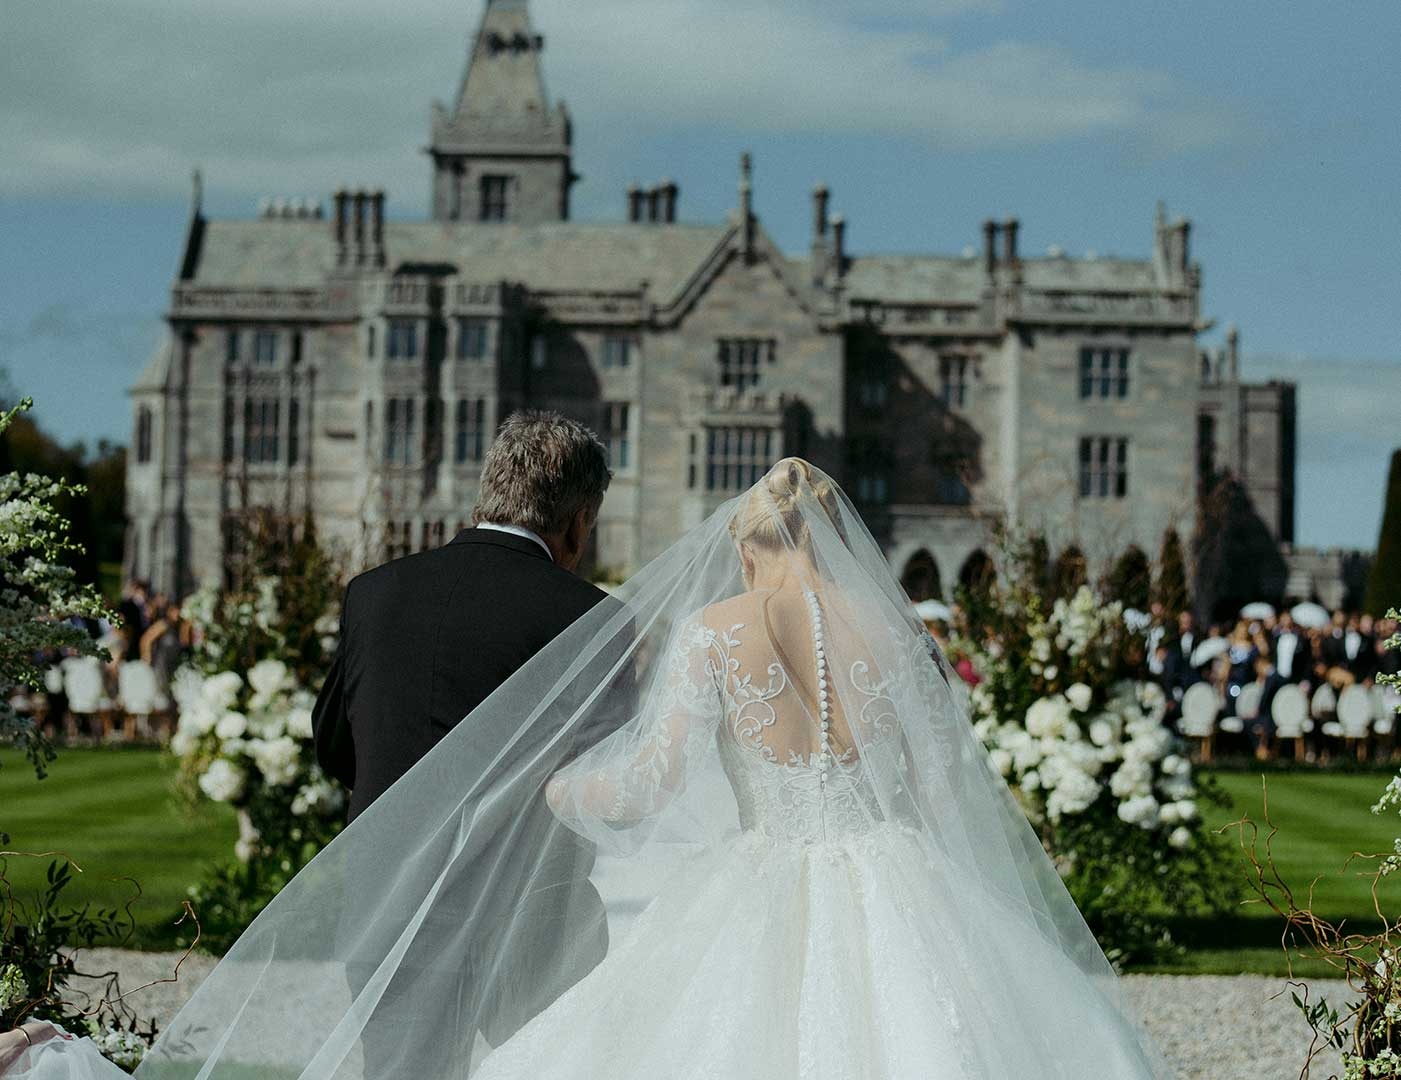 Destination Weddings Ireland, Adare Manor, Olivia Buckley International, Wedding planners in Ireland, Event Planners in Ireland, Wedding Ceremony